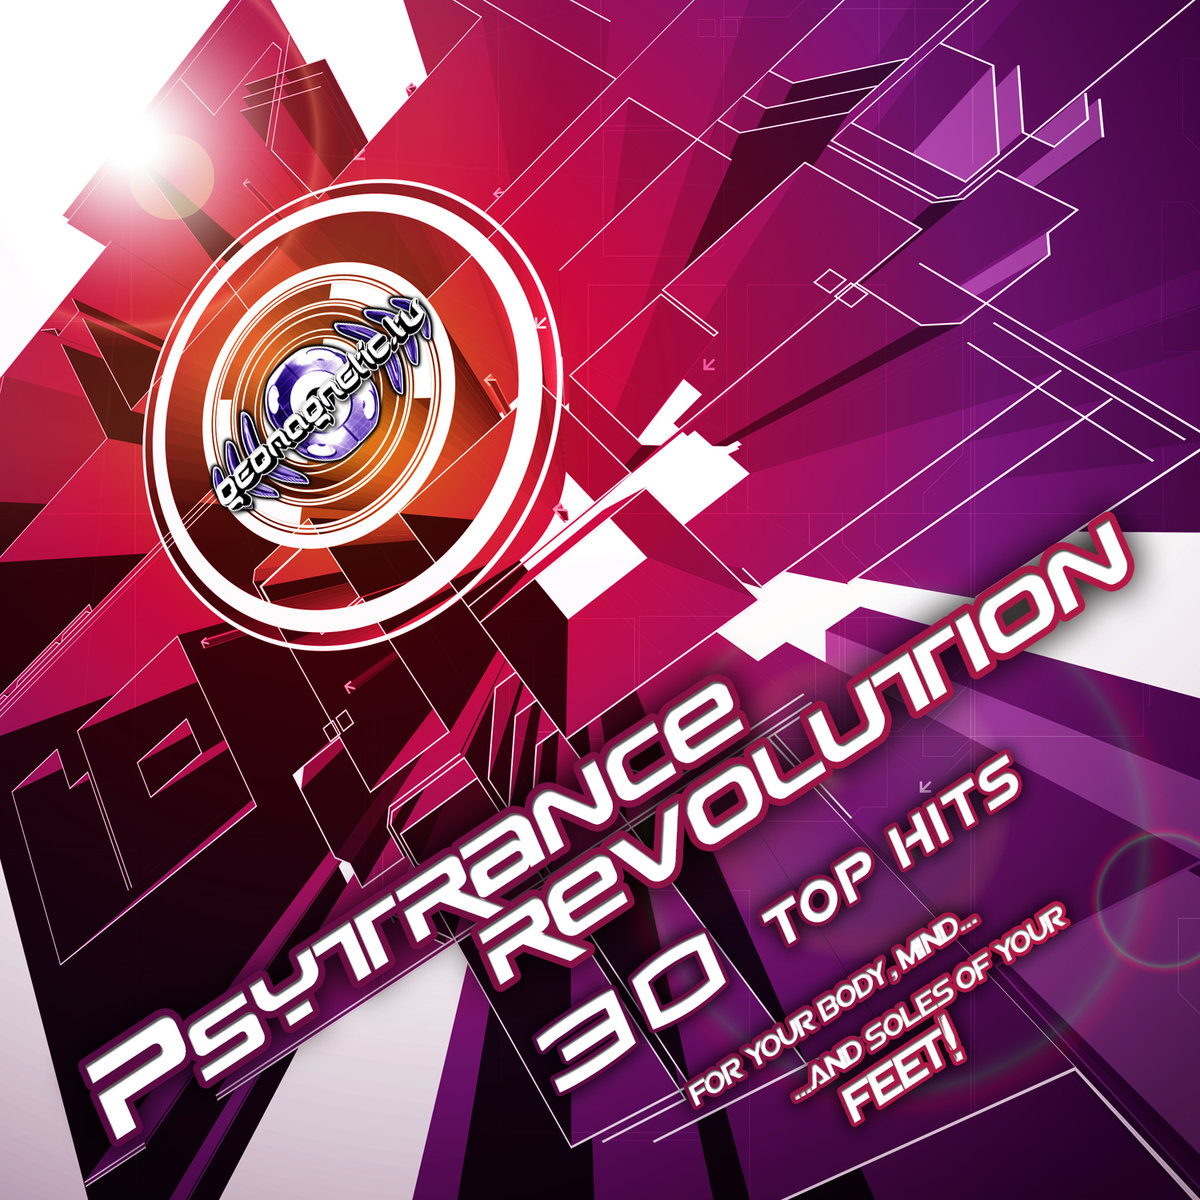 Stuntproject - Deserve Life @ 'Various Artists - Psytrance Revolution (30 Top Hits)' album (electronic, goa)